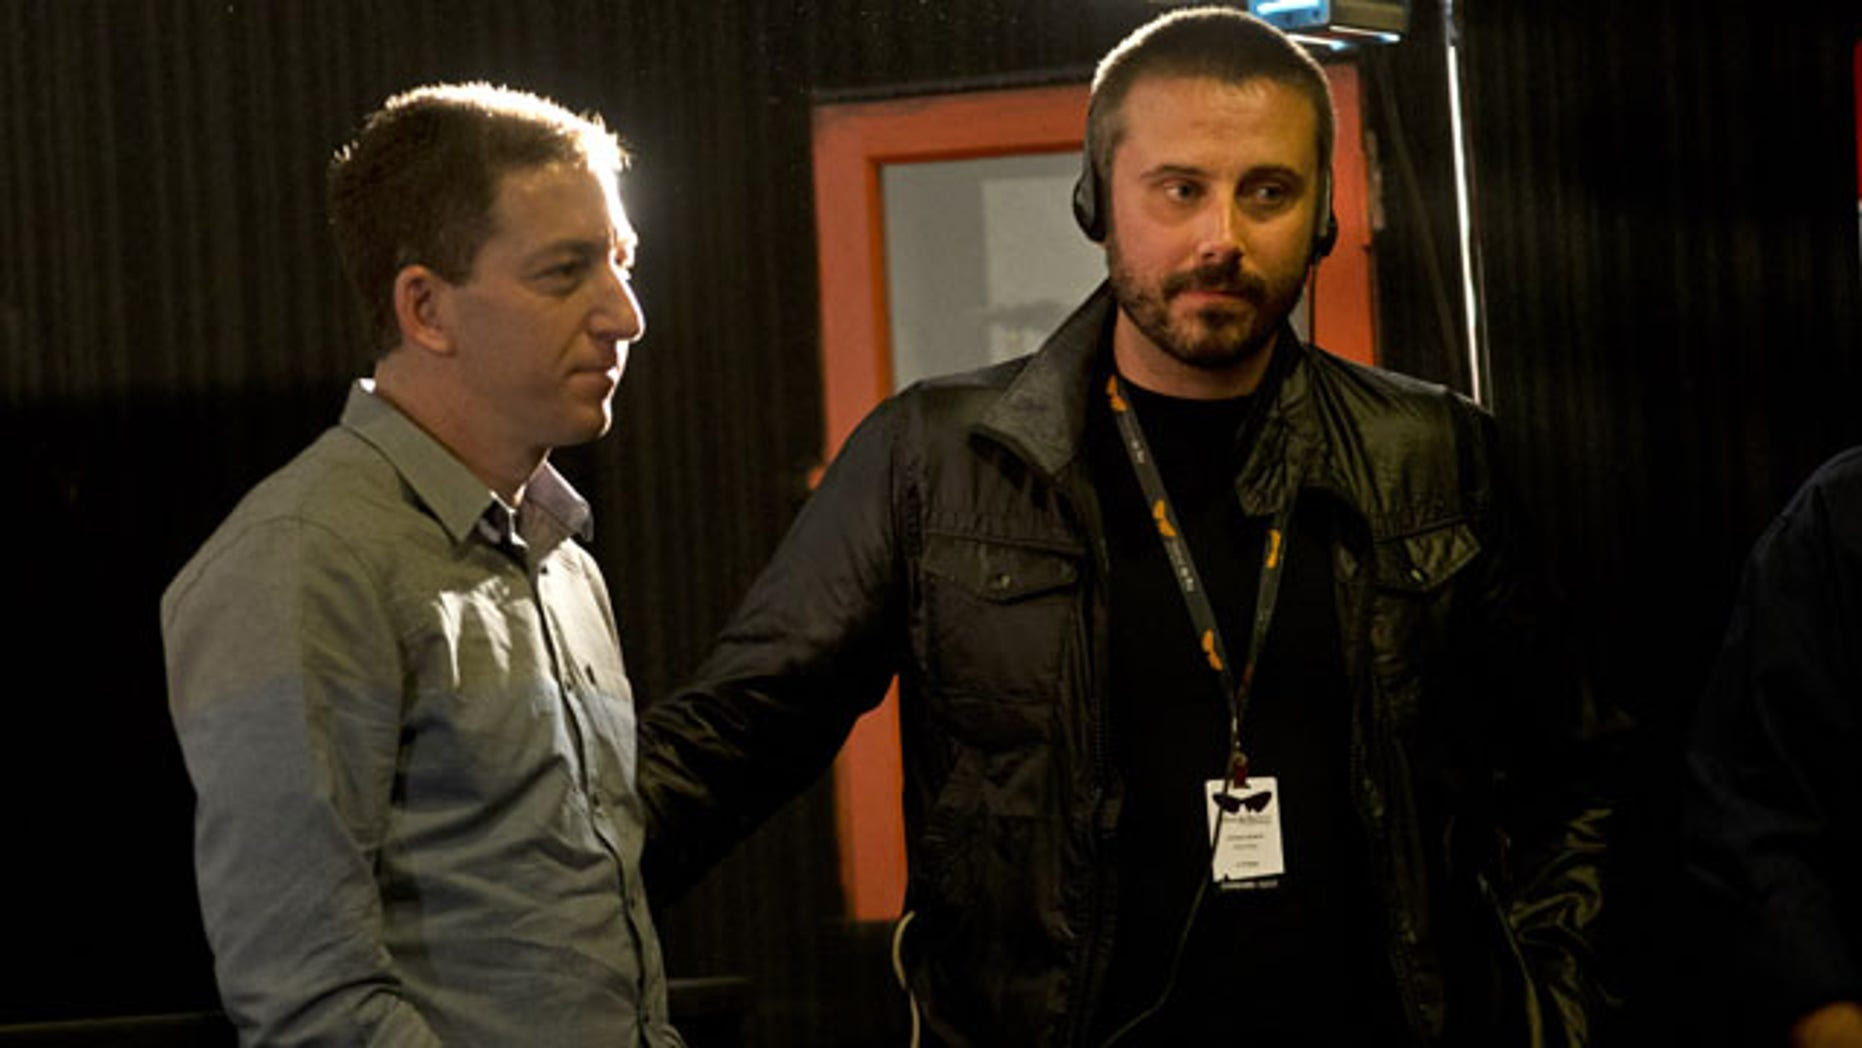 """September 28, 2013: American journalist Jeremy Scahill, right, and Glenn Greenwald wait for the beginning of a panel following the screening of the """"Dirty Wars"""" documentary, based on a book of the same name by Scahill, at the Rio Film Festival in Rio de Janeiro, Brazil. (AP Photo)"""